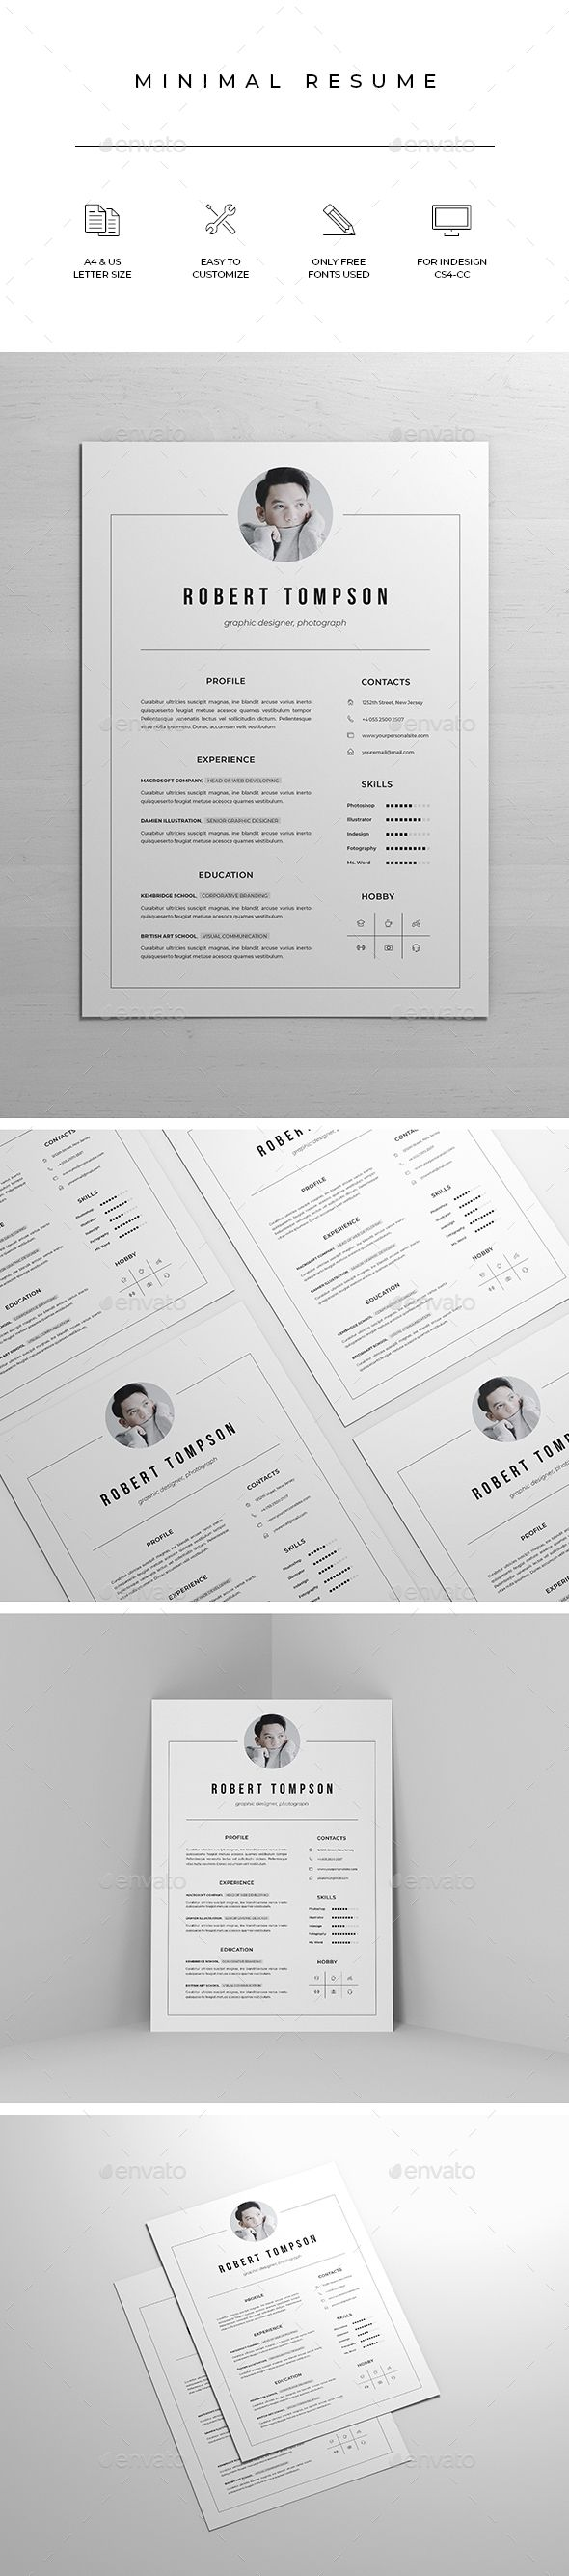 Clean Resume/CV Resumes Stationery Graphic design